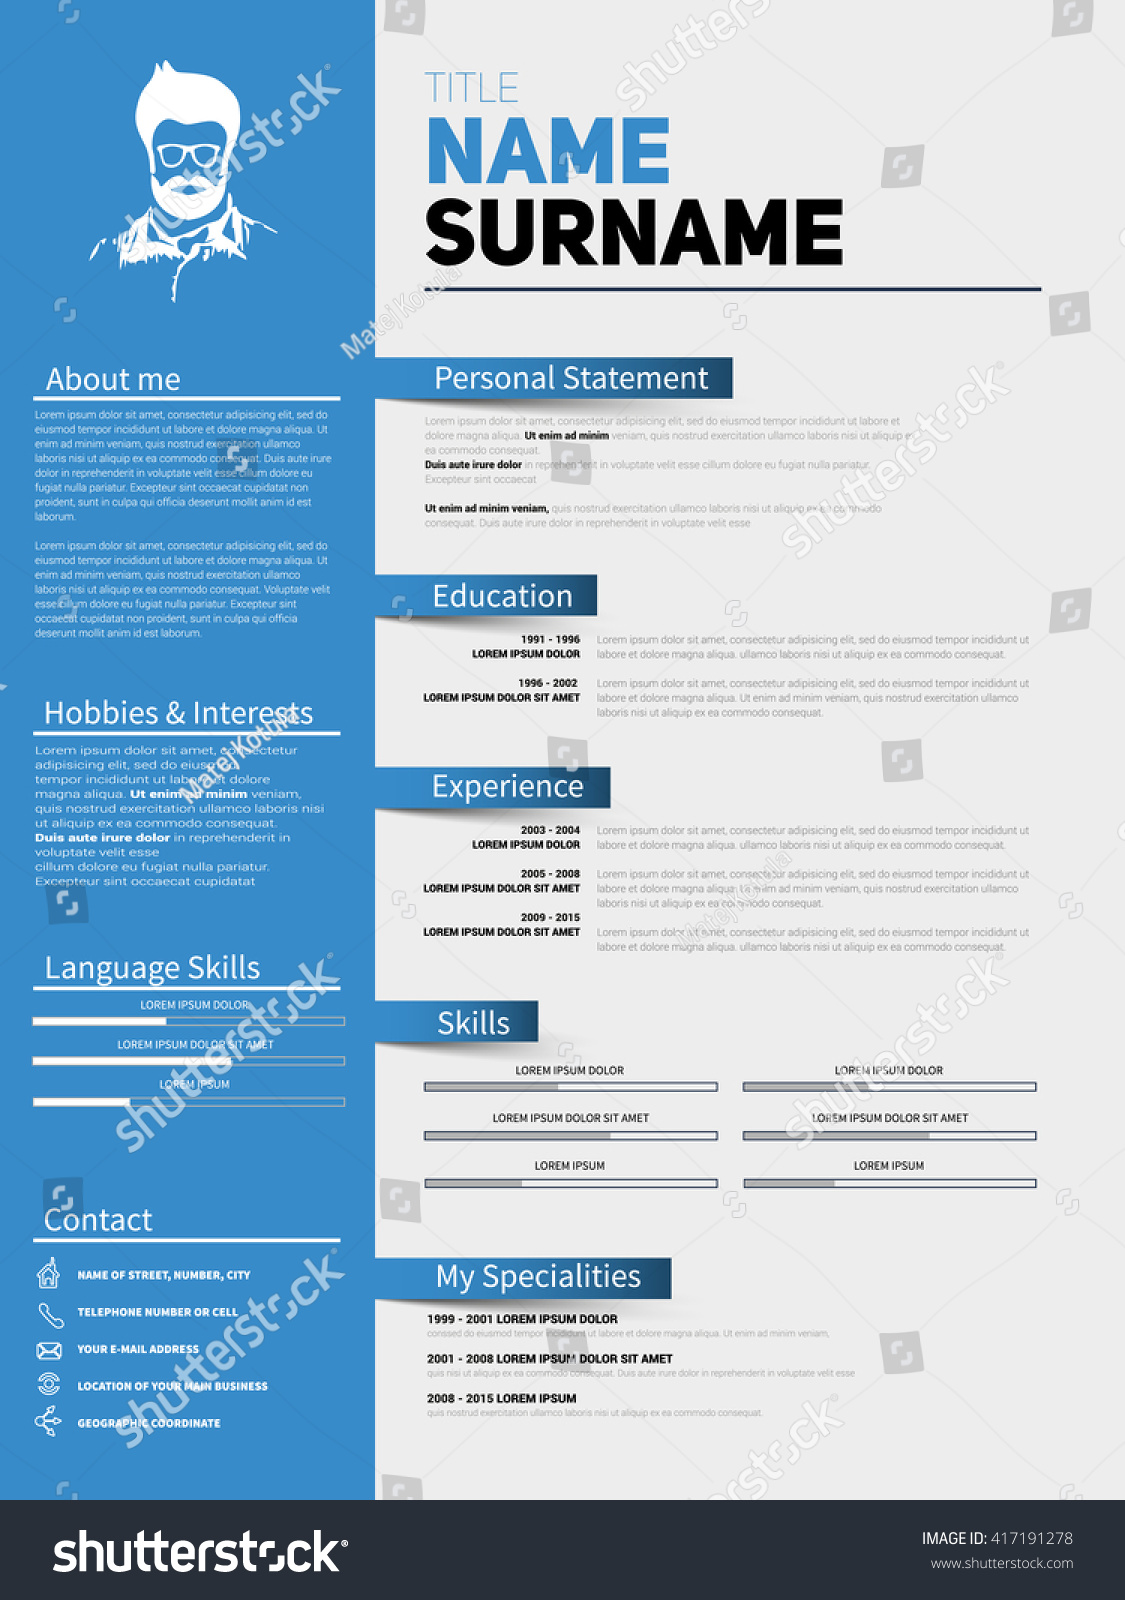 resume minimalist cv resume template simple stock vector 417191278